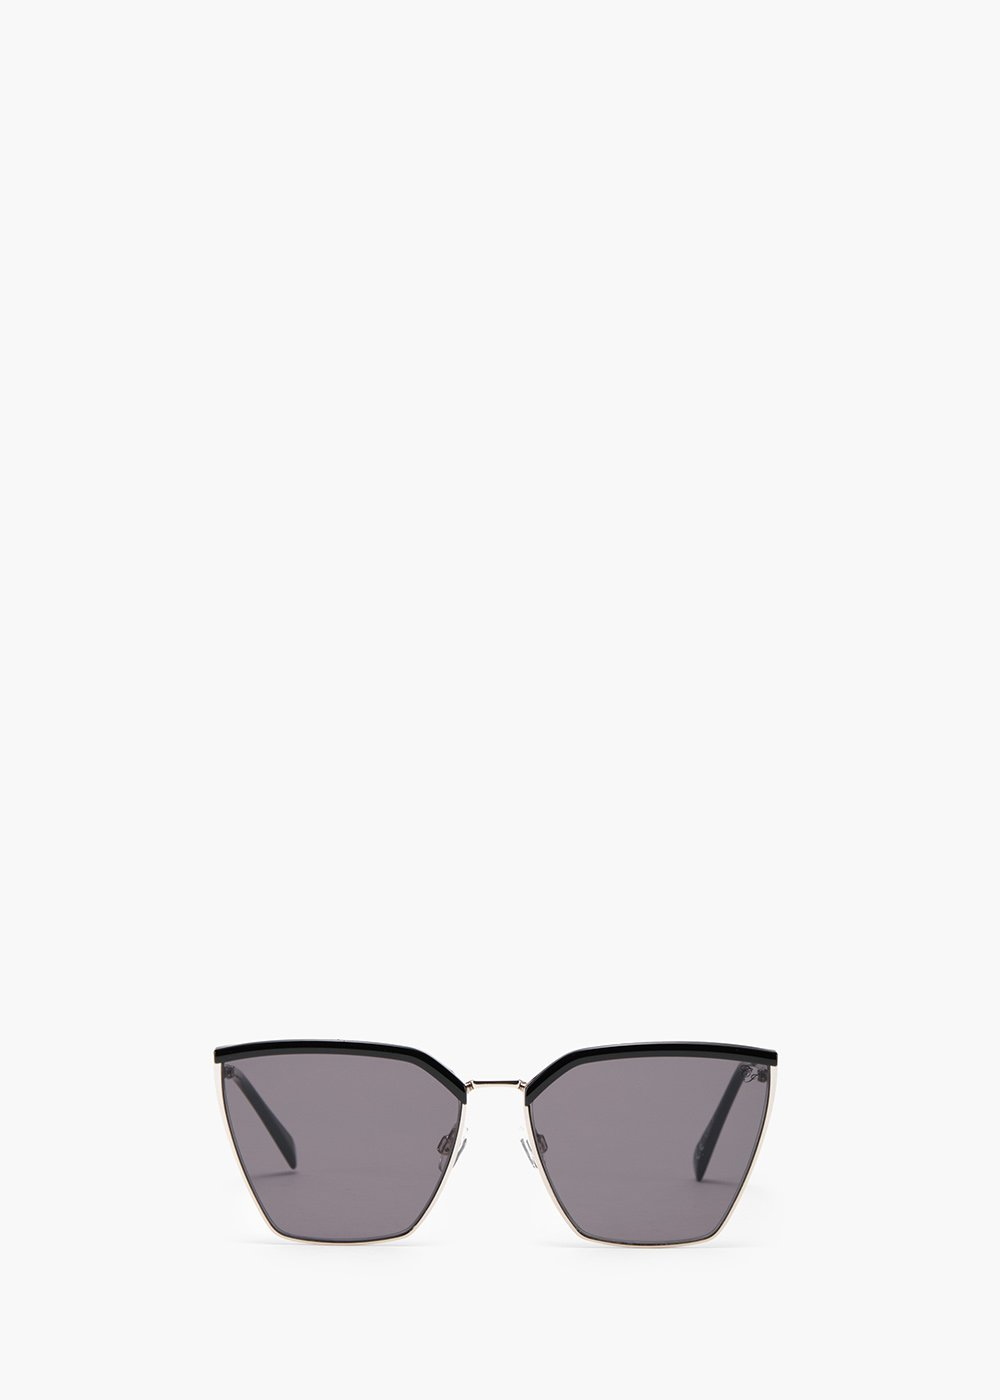 Sunglasses square model with black colour resin detail